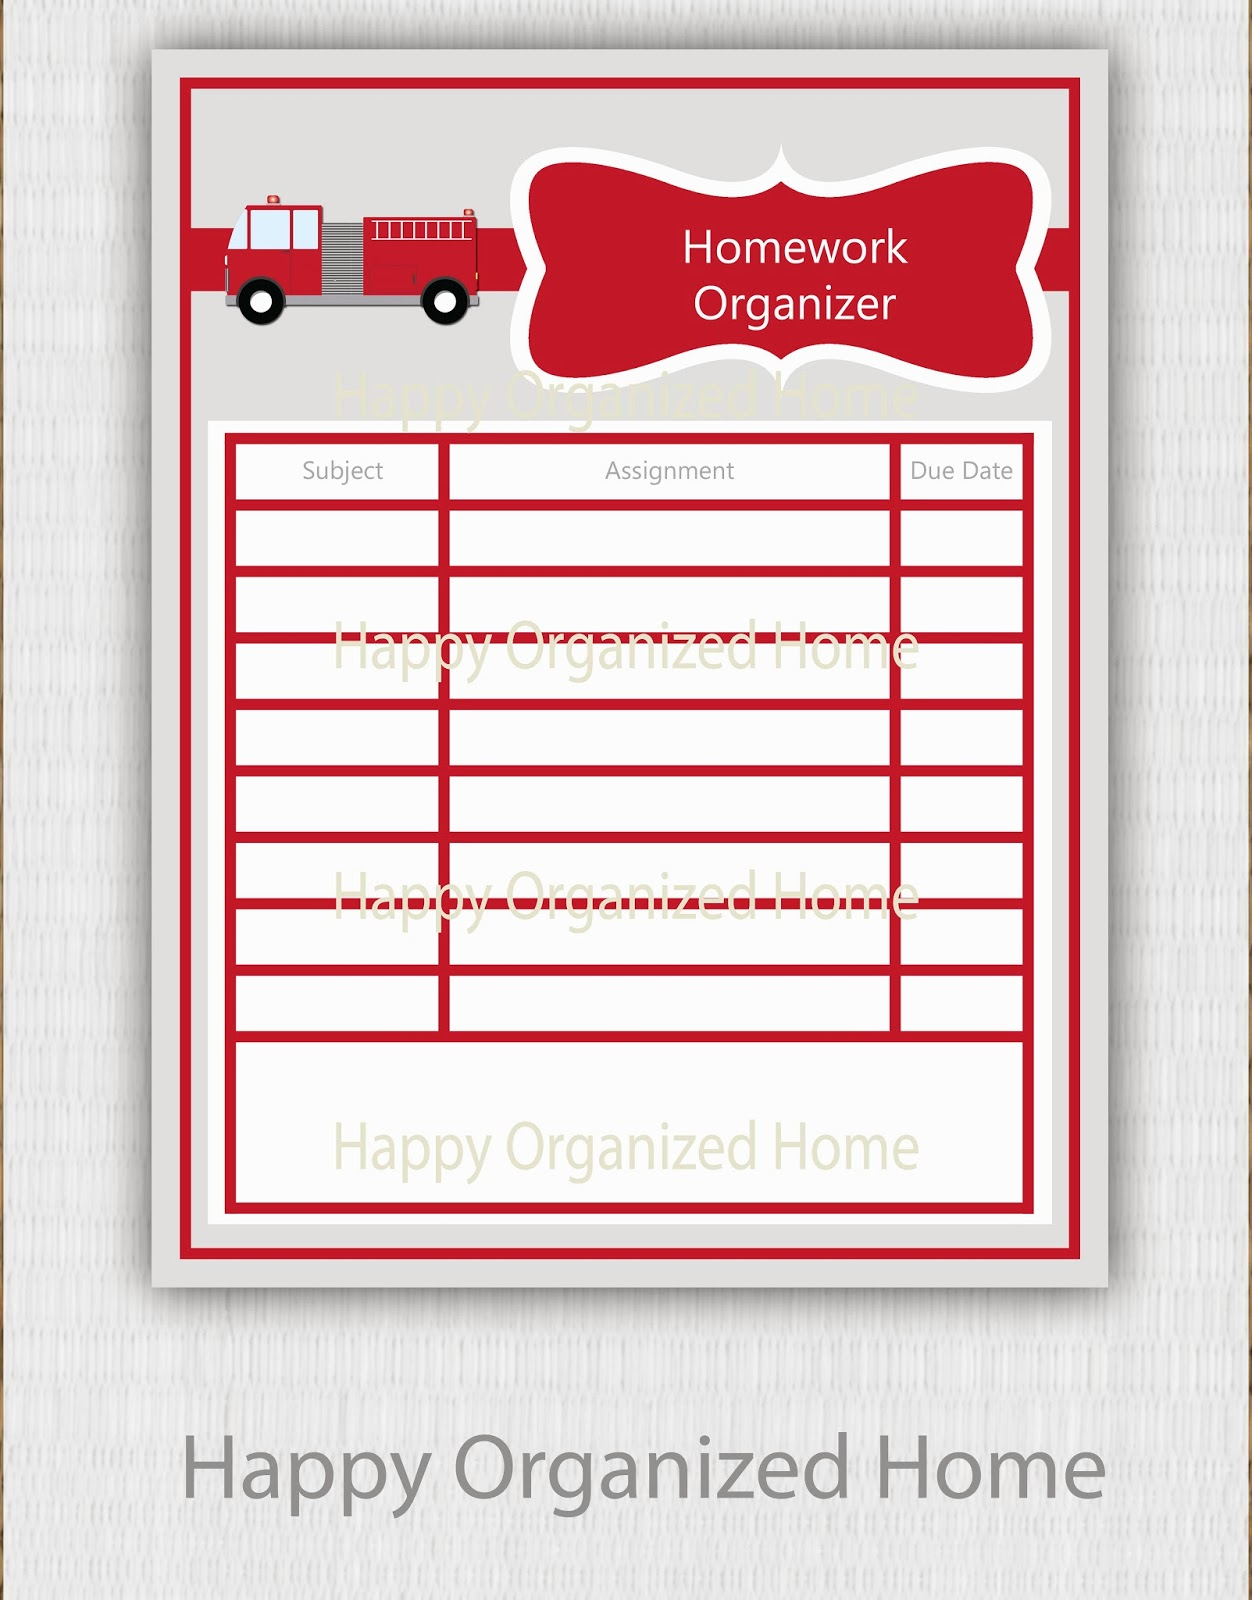 https://www.etsy.com/listing/152544353/firetruck-homework-organizer-planner-for?ref=shop_home_active_2&ga_search_query=homework%2Borganizer